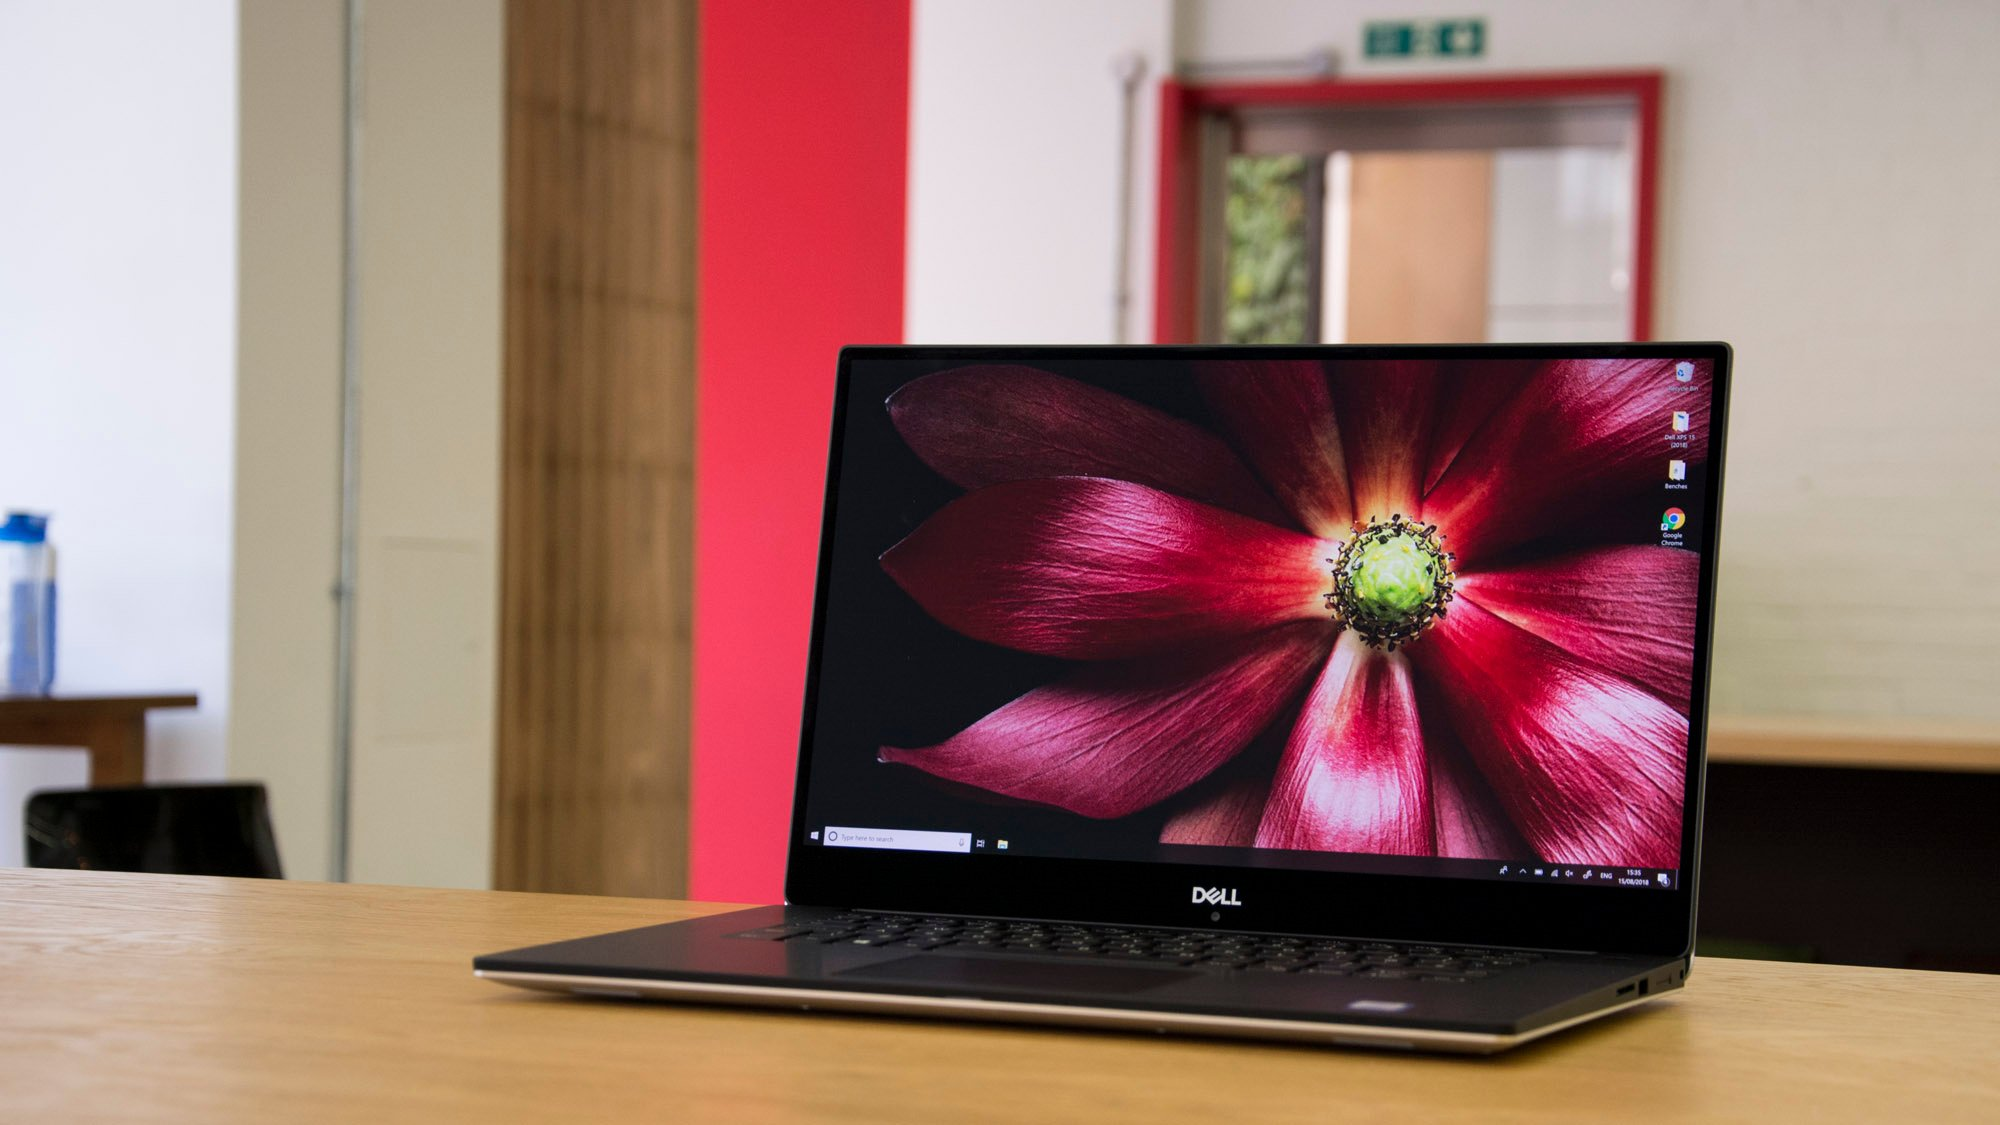 Dell Xps 15 9570 Review The 2018 Macbook Pro Beater